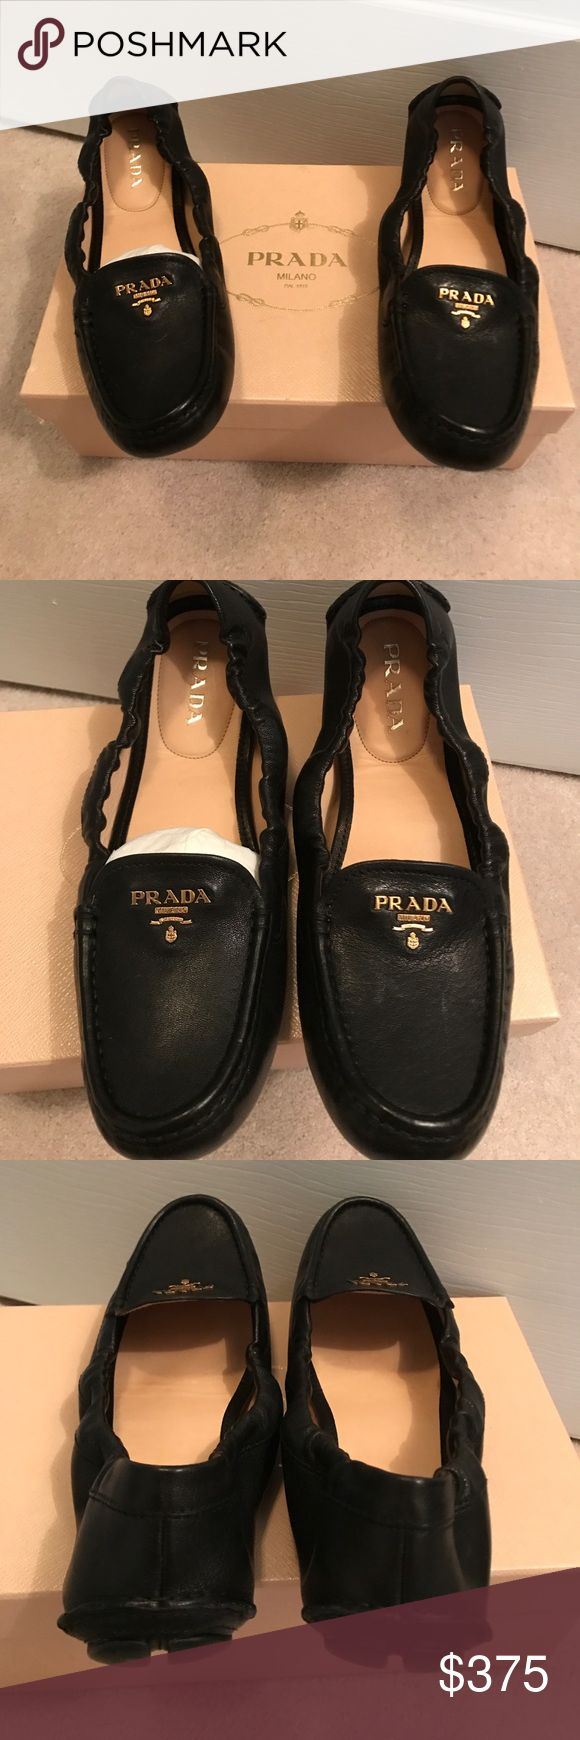 Prada scrunch driving loafer Brand new, never worn Prada leather scrunch driving loafers in black with gold letter detail. Comes with dust bag and Prada box. I can provide additional photos upon request. Prada Shoes Flats & Loafers